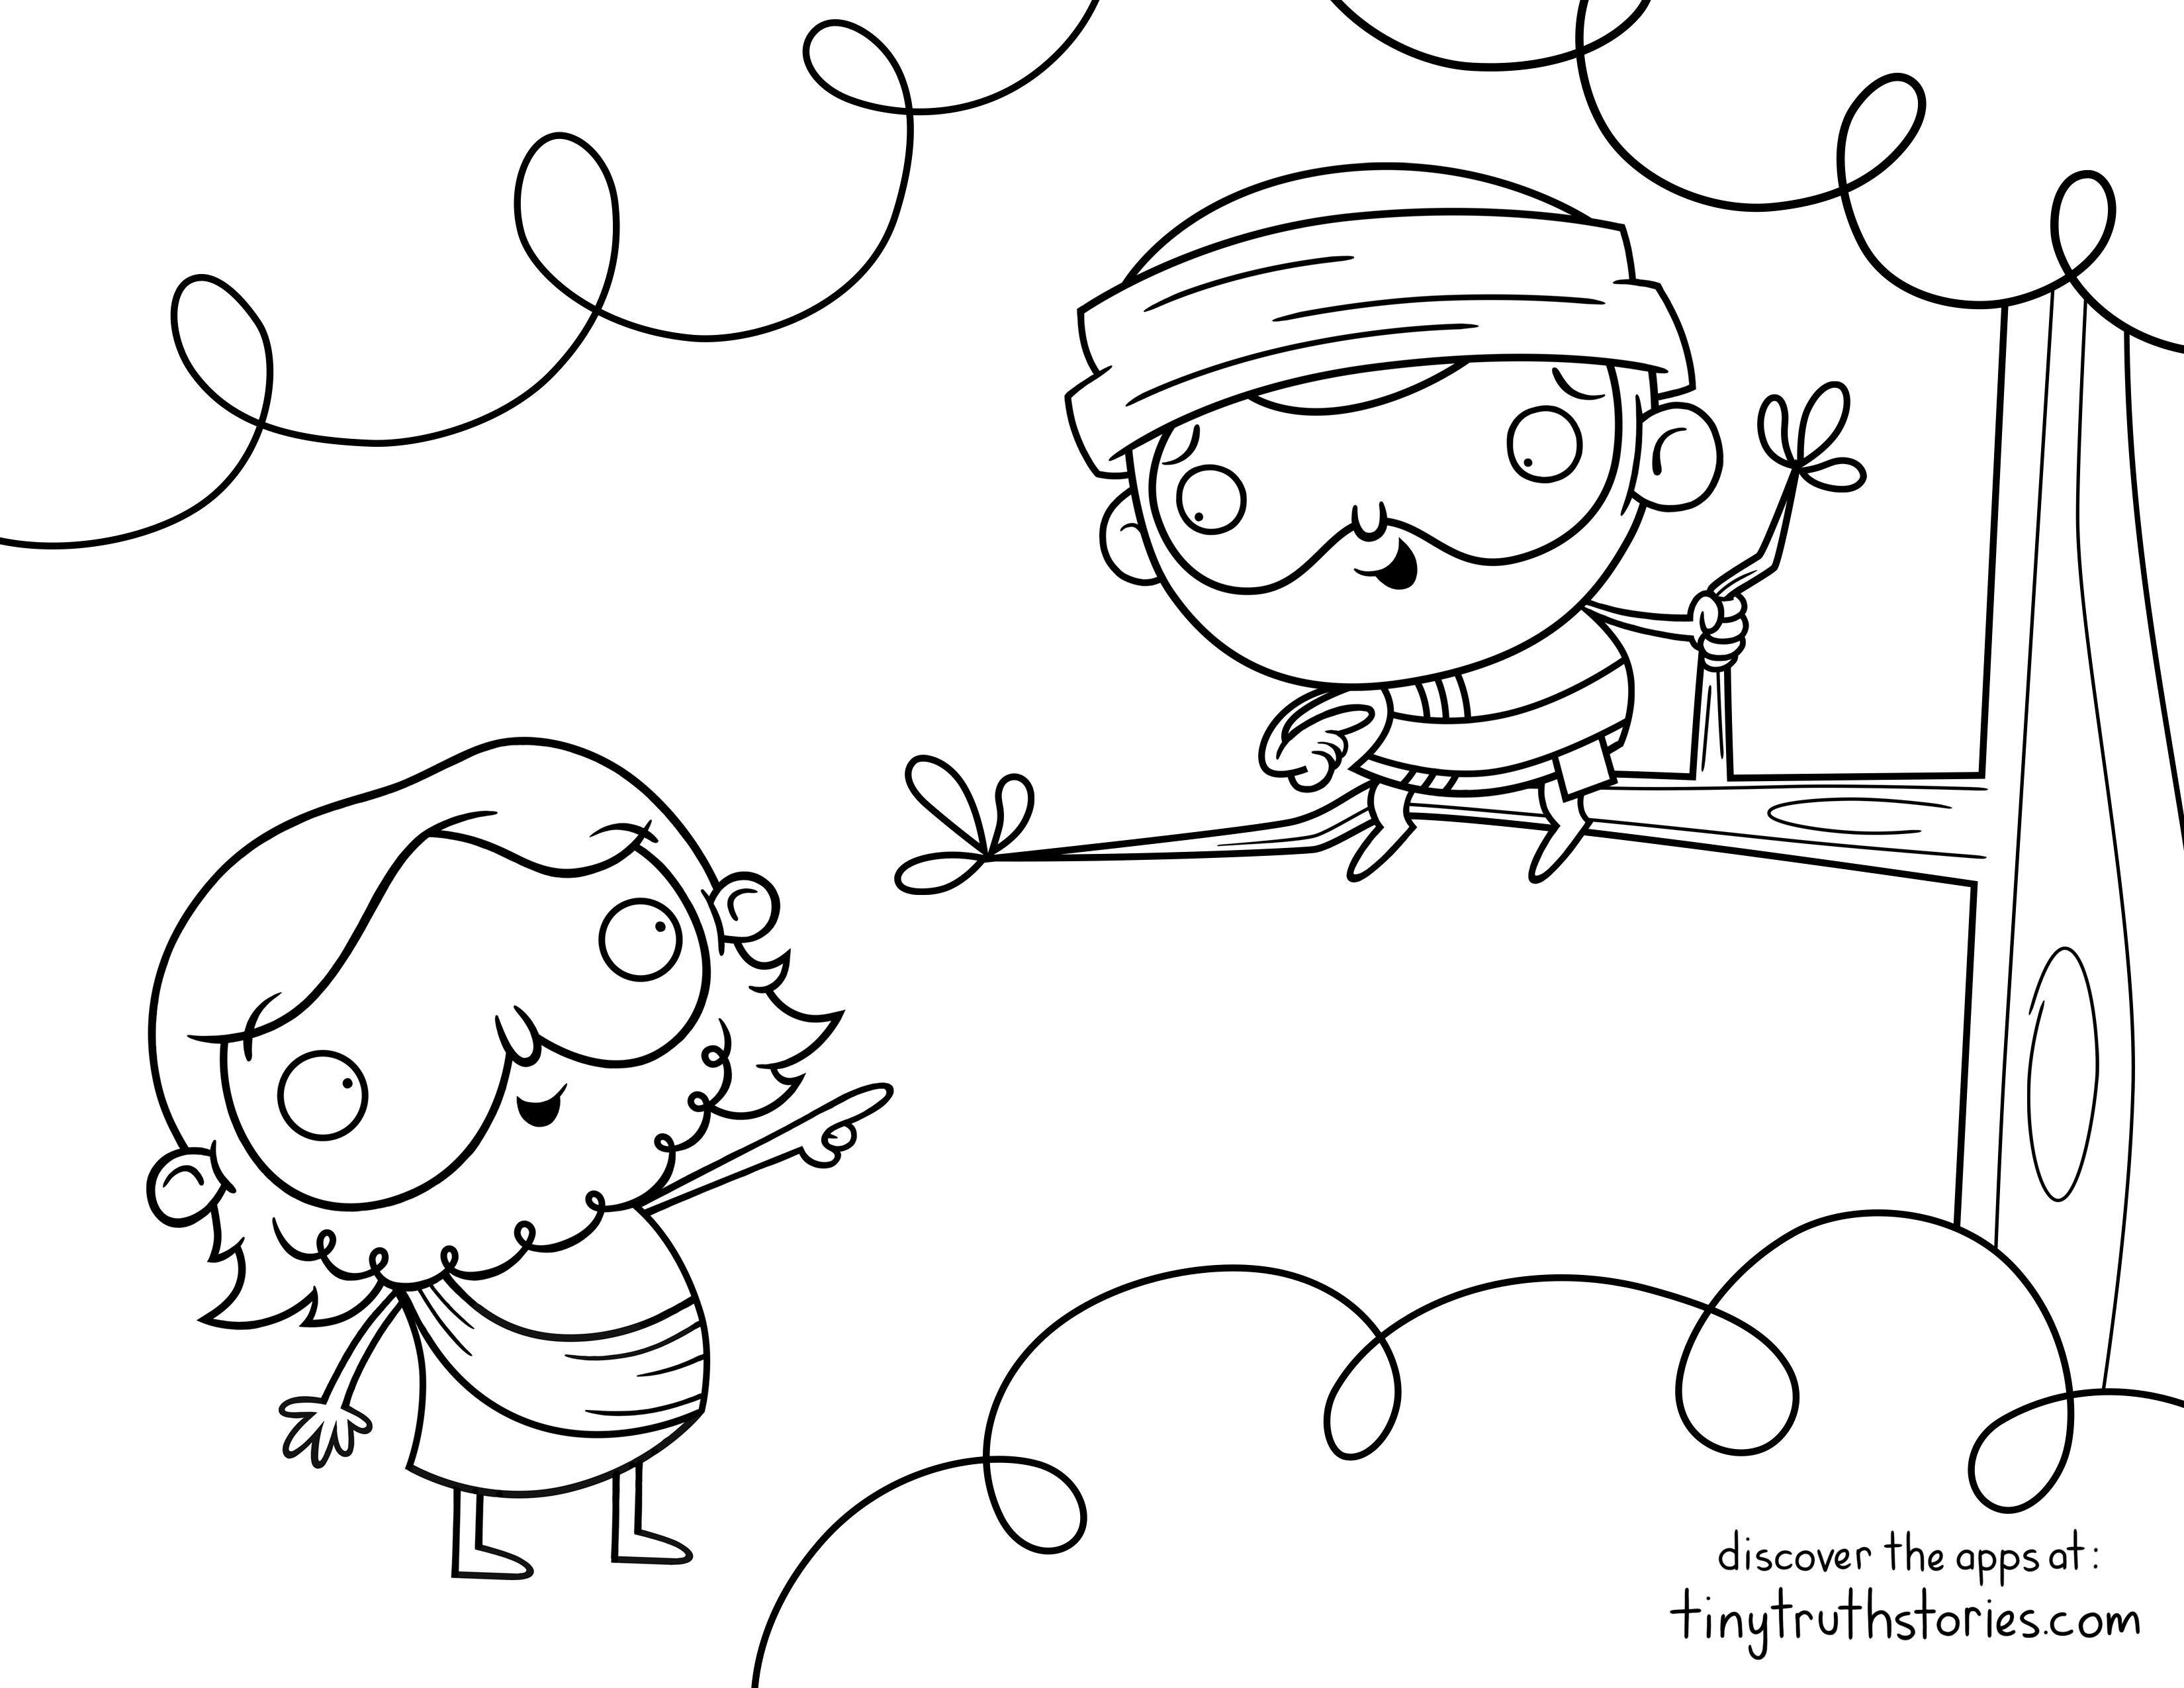 Free Printable Coloring Pages Zacchaeus